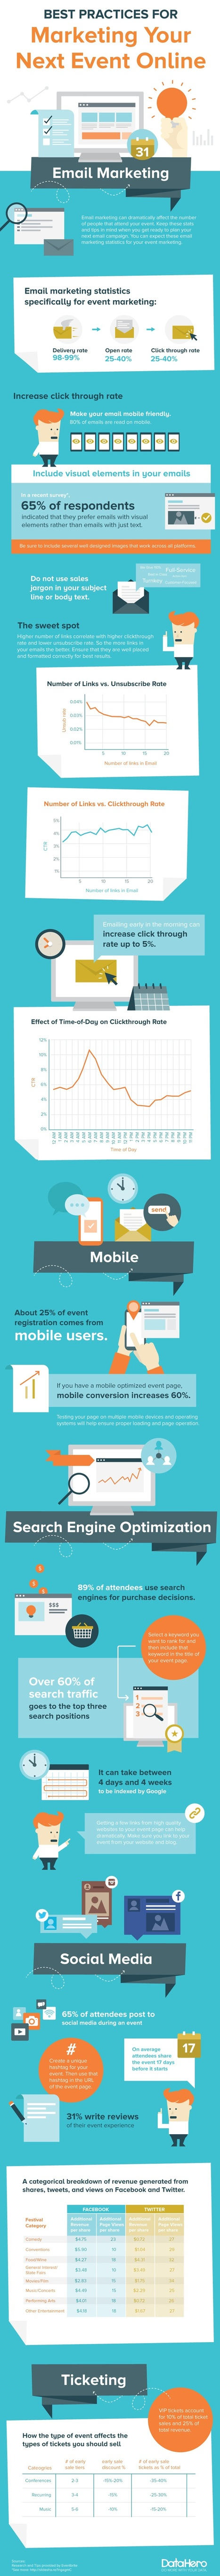 How to Promote an Event Using Online Marketing #Infographic | Digital Brand Marketing | Scoop.it